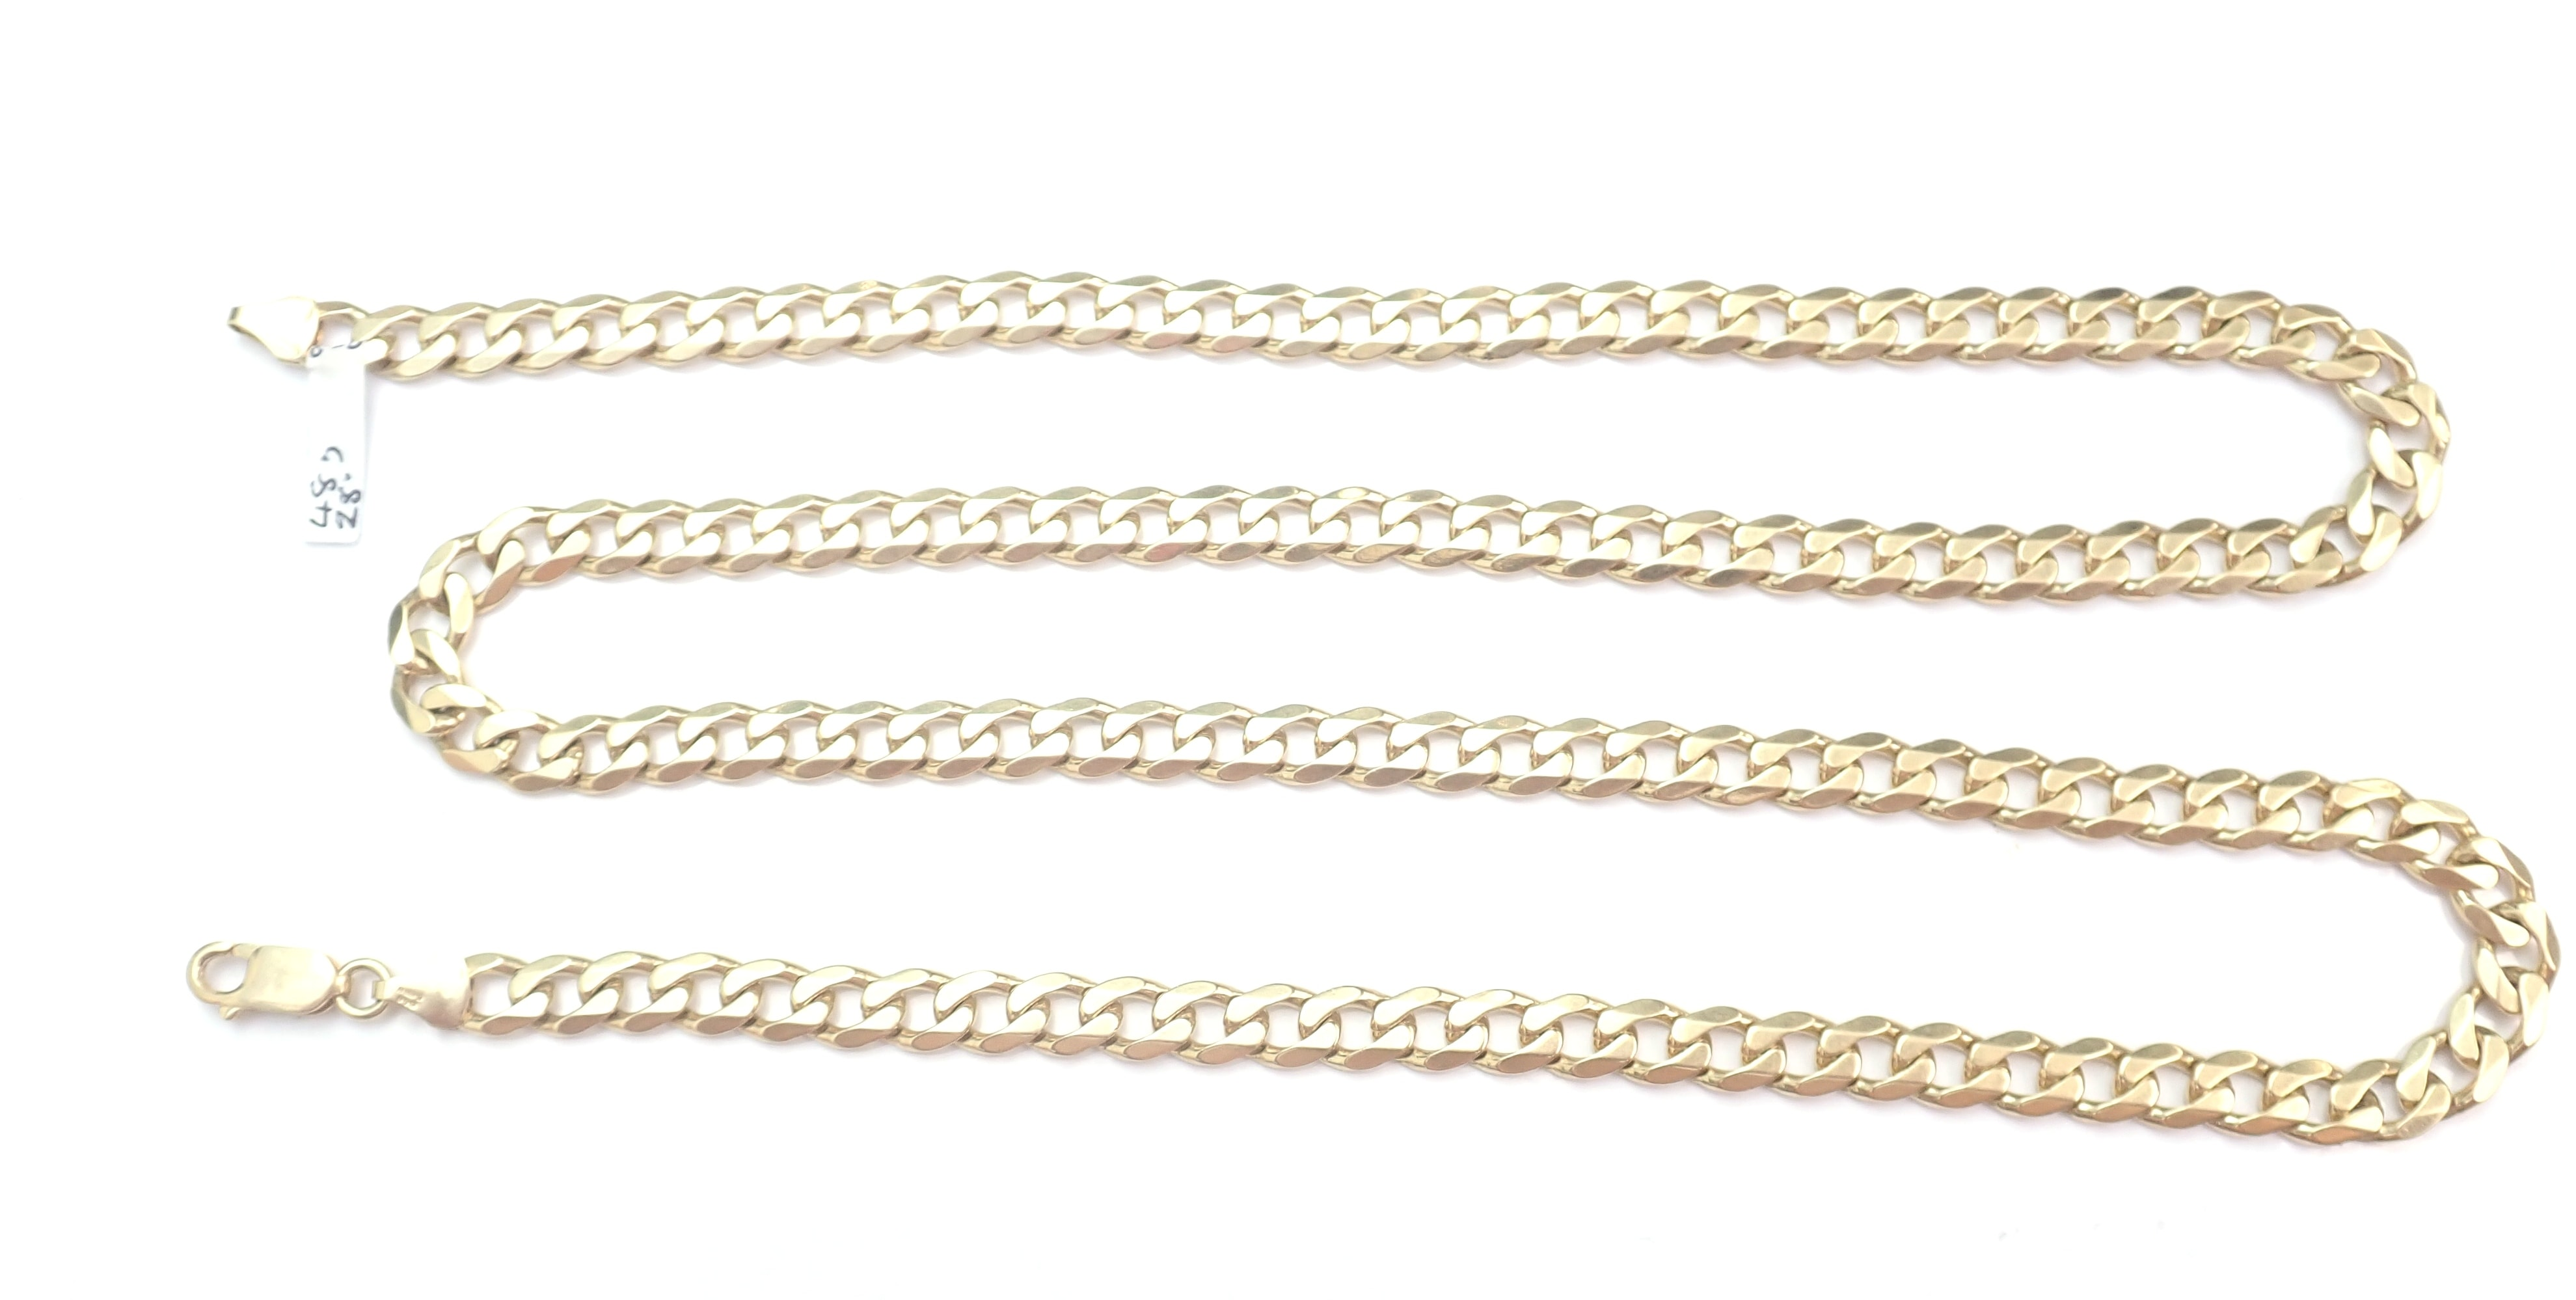 "AZZ00383 - 9ct 375 Yellow Gold Curb Chain 28"" 48gms. #910"